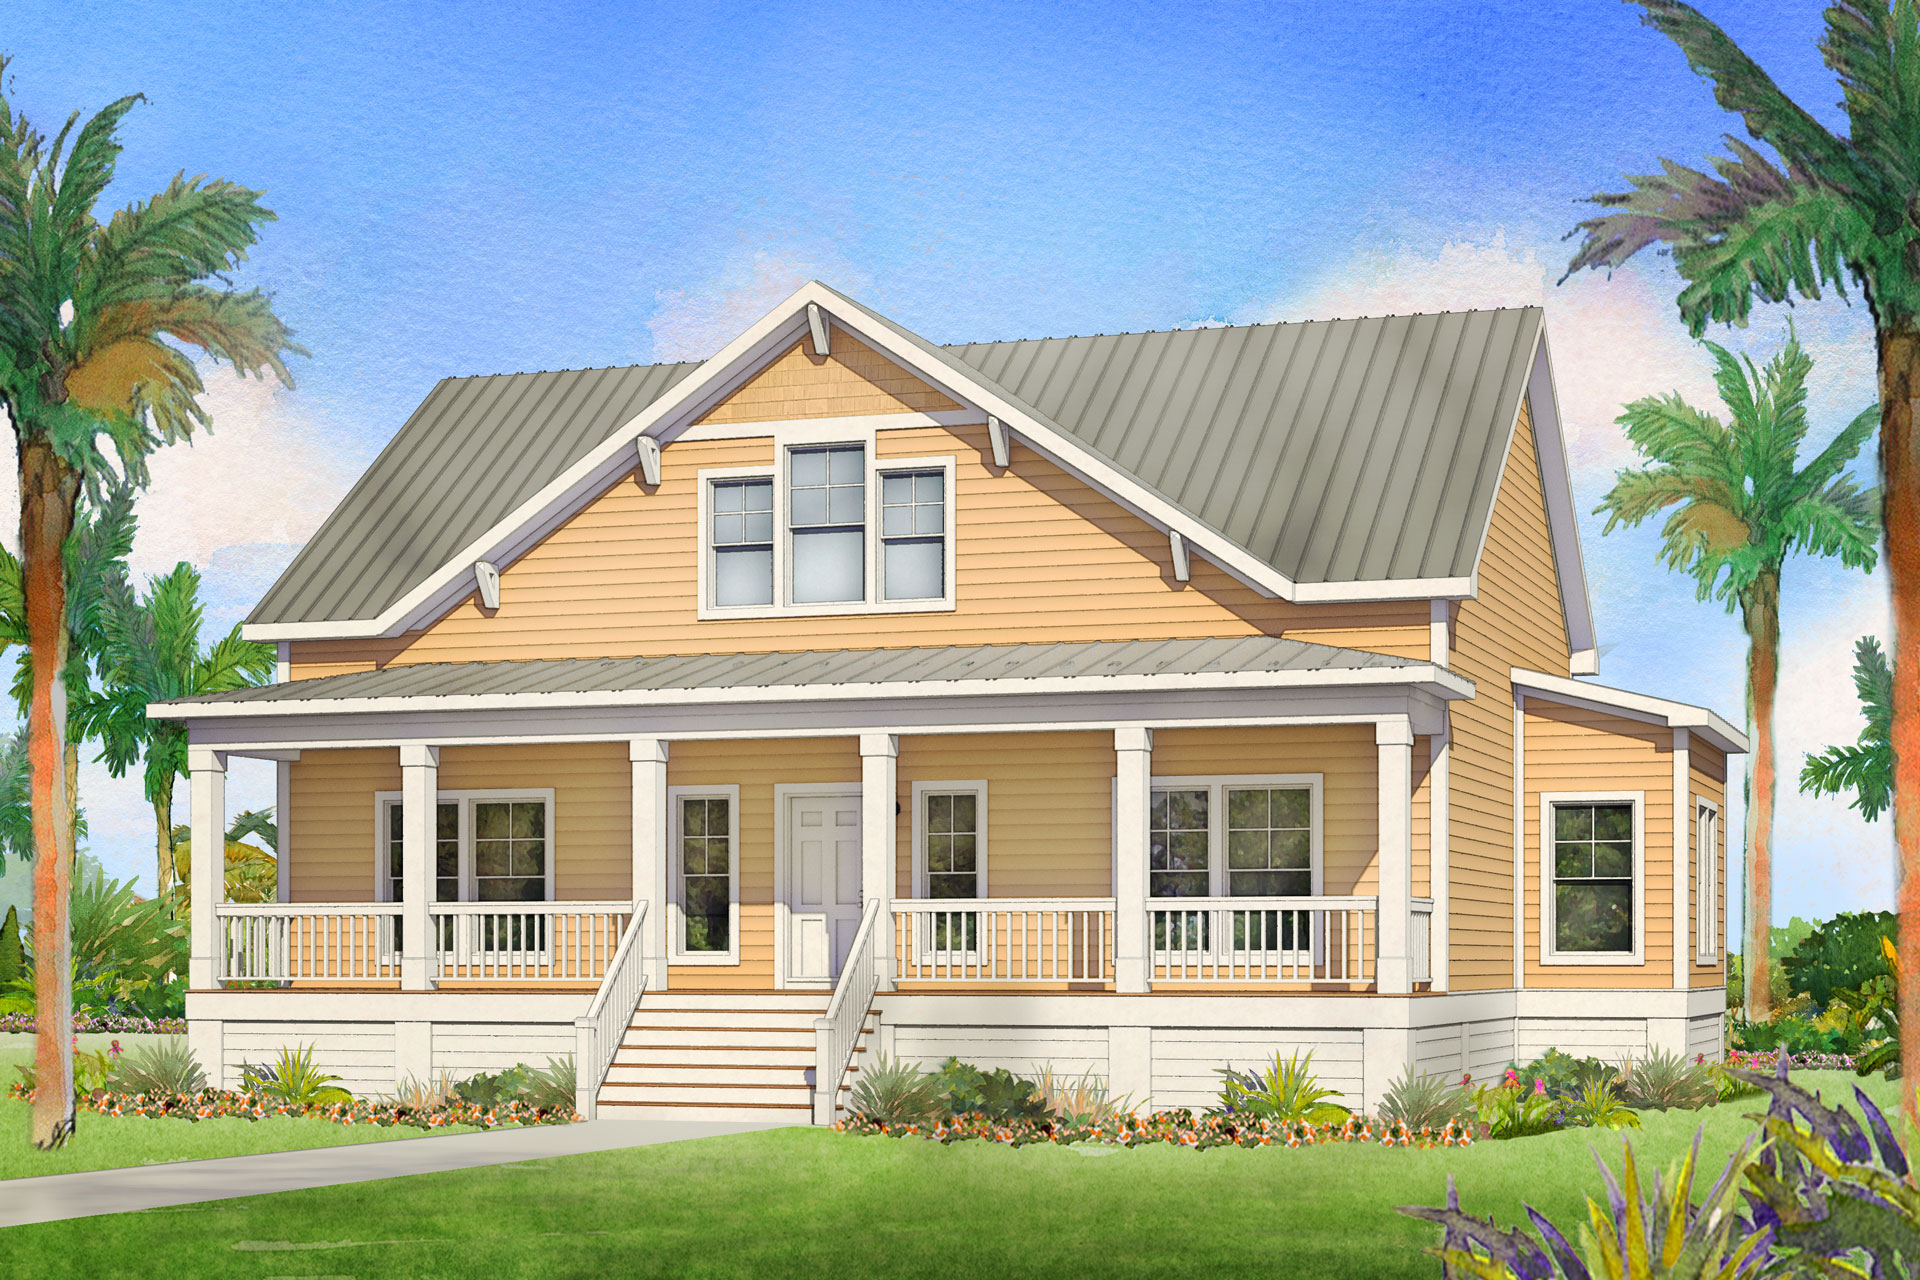 savannah modular home rendering